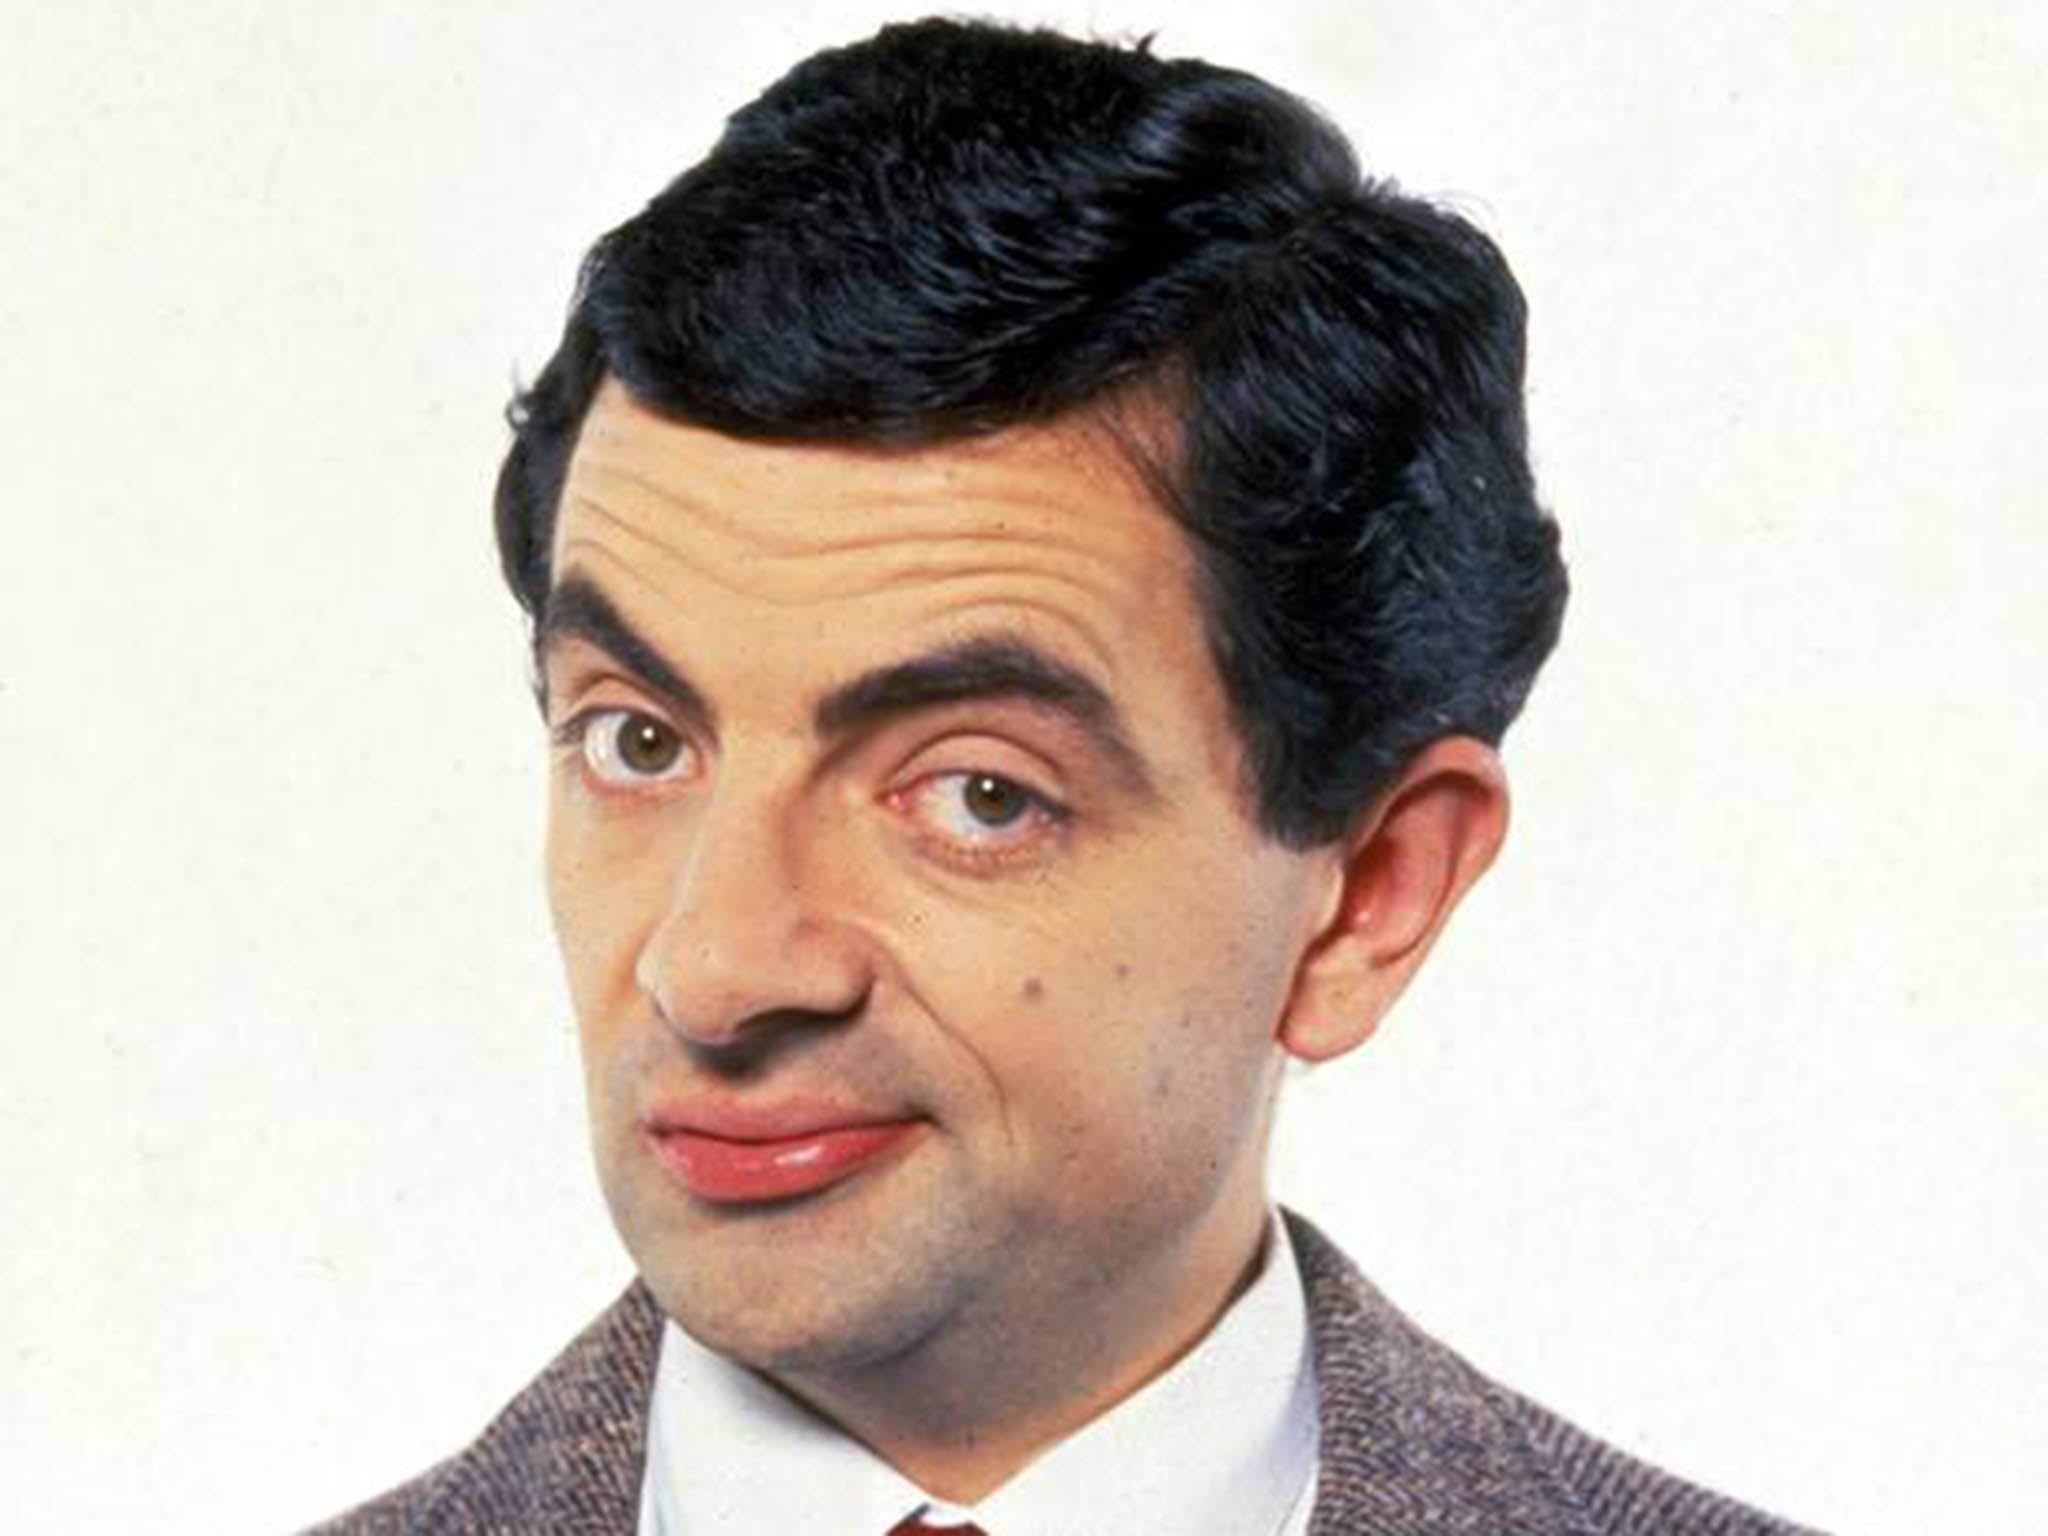 https://static.independent.co.uk/s3fs-public/thumbnails/image/2014/10/21/09/rowan-atkinson.jpg